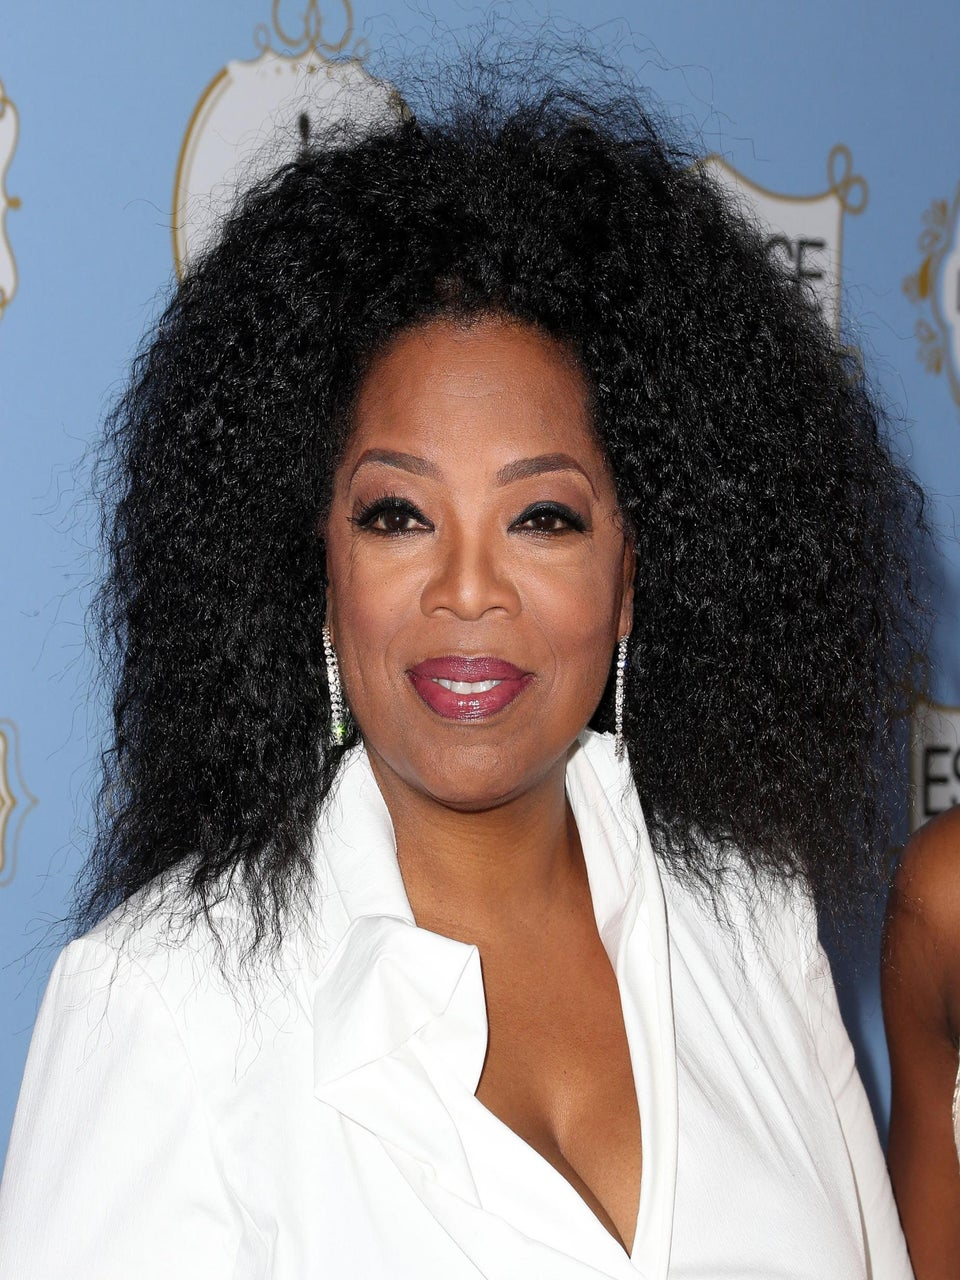 Oprah Winfrey, Lupita Nyong'o and More Join List of Presenters at Black Women in Hollywood Event